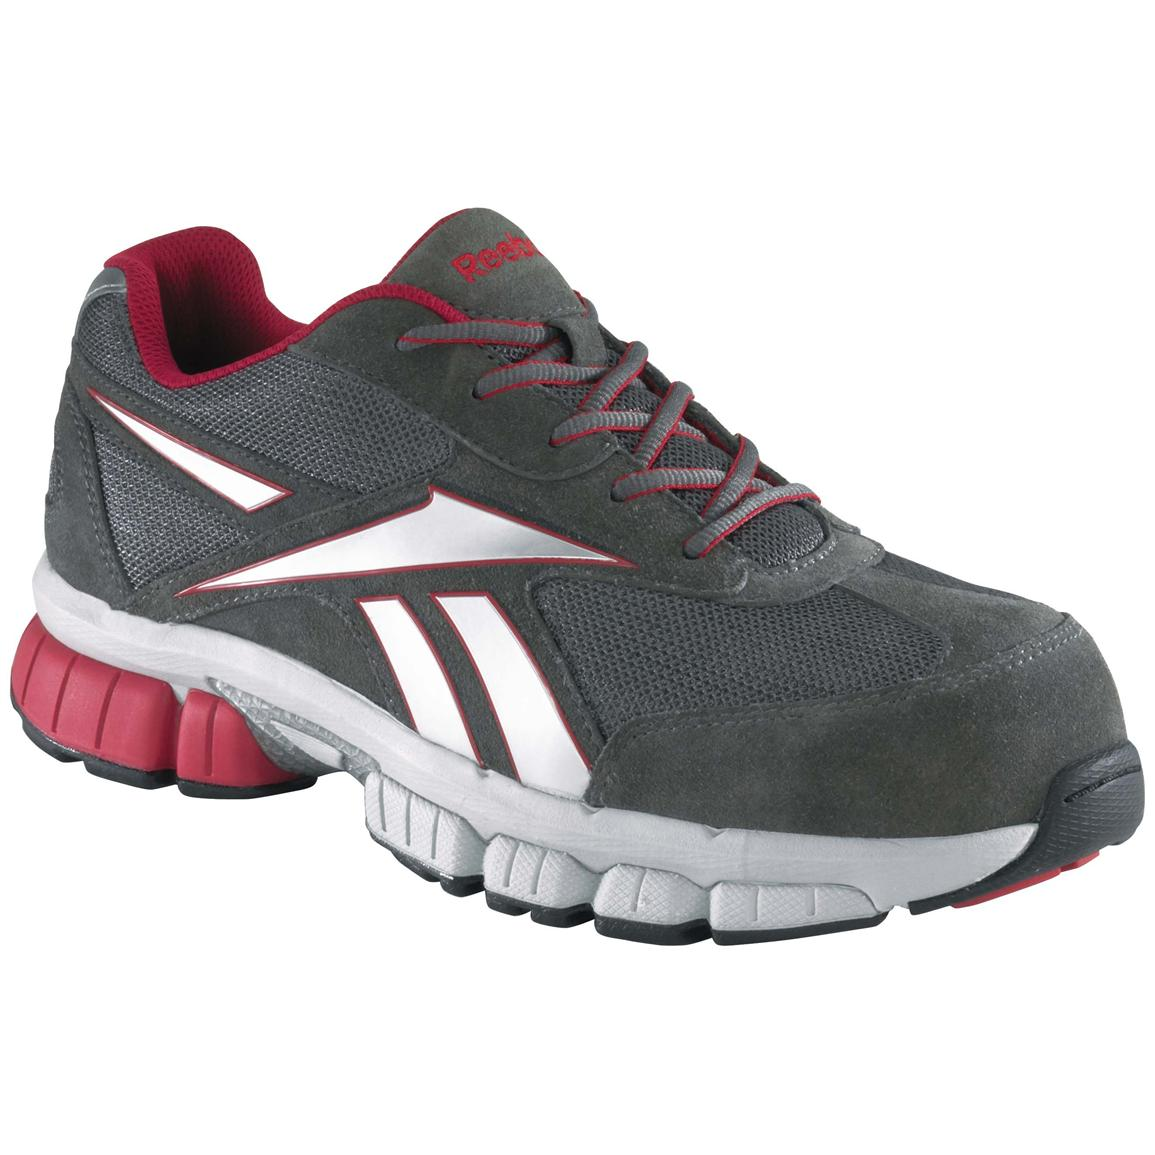 Men's Reebok® Performance Composite Toe Cross Trainers, Gray / Red